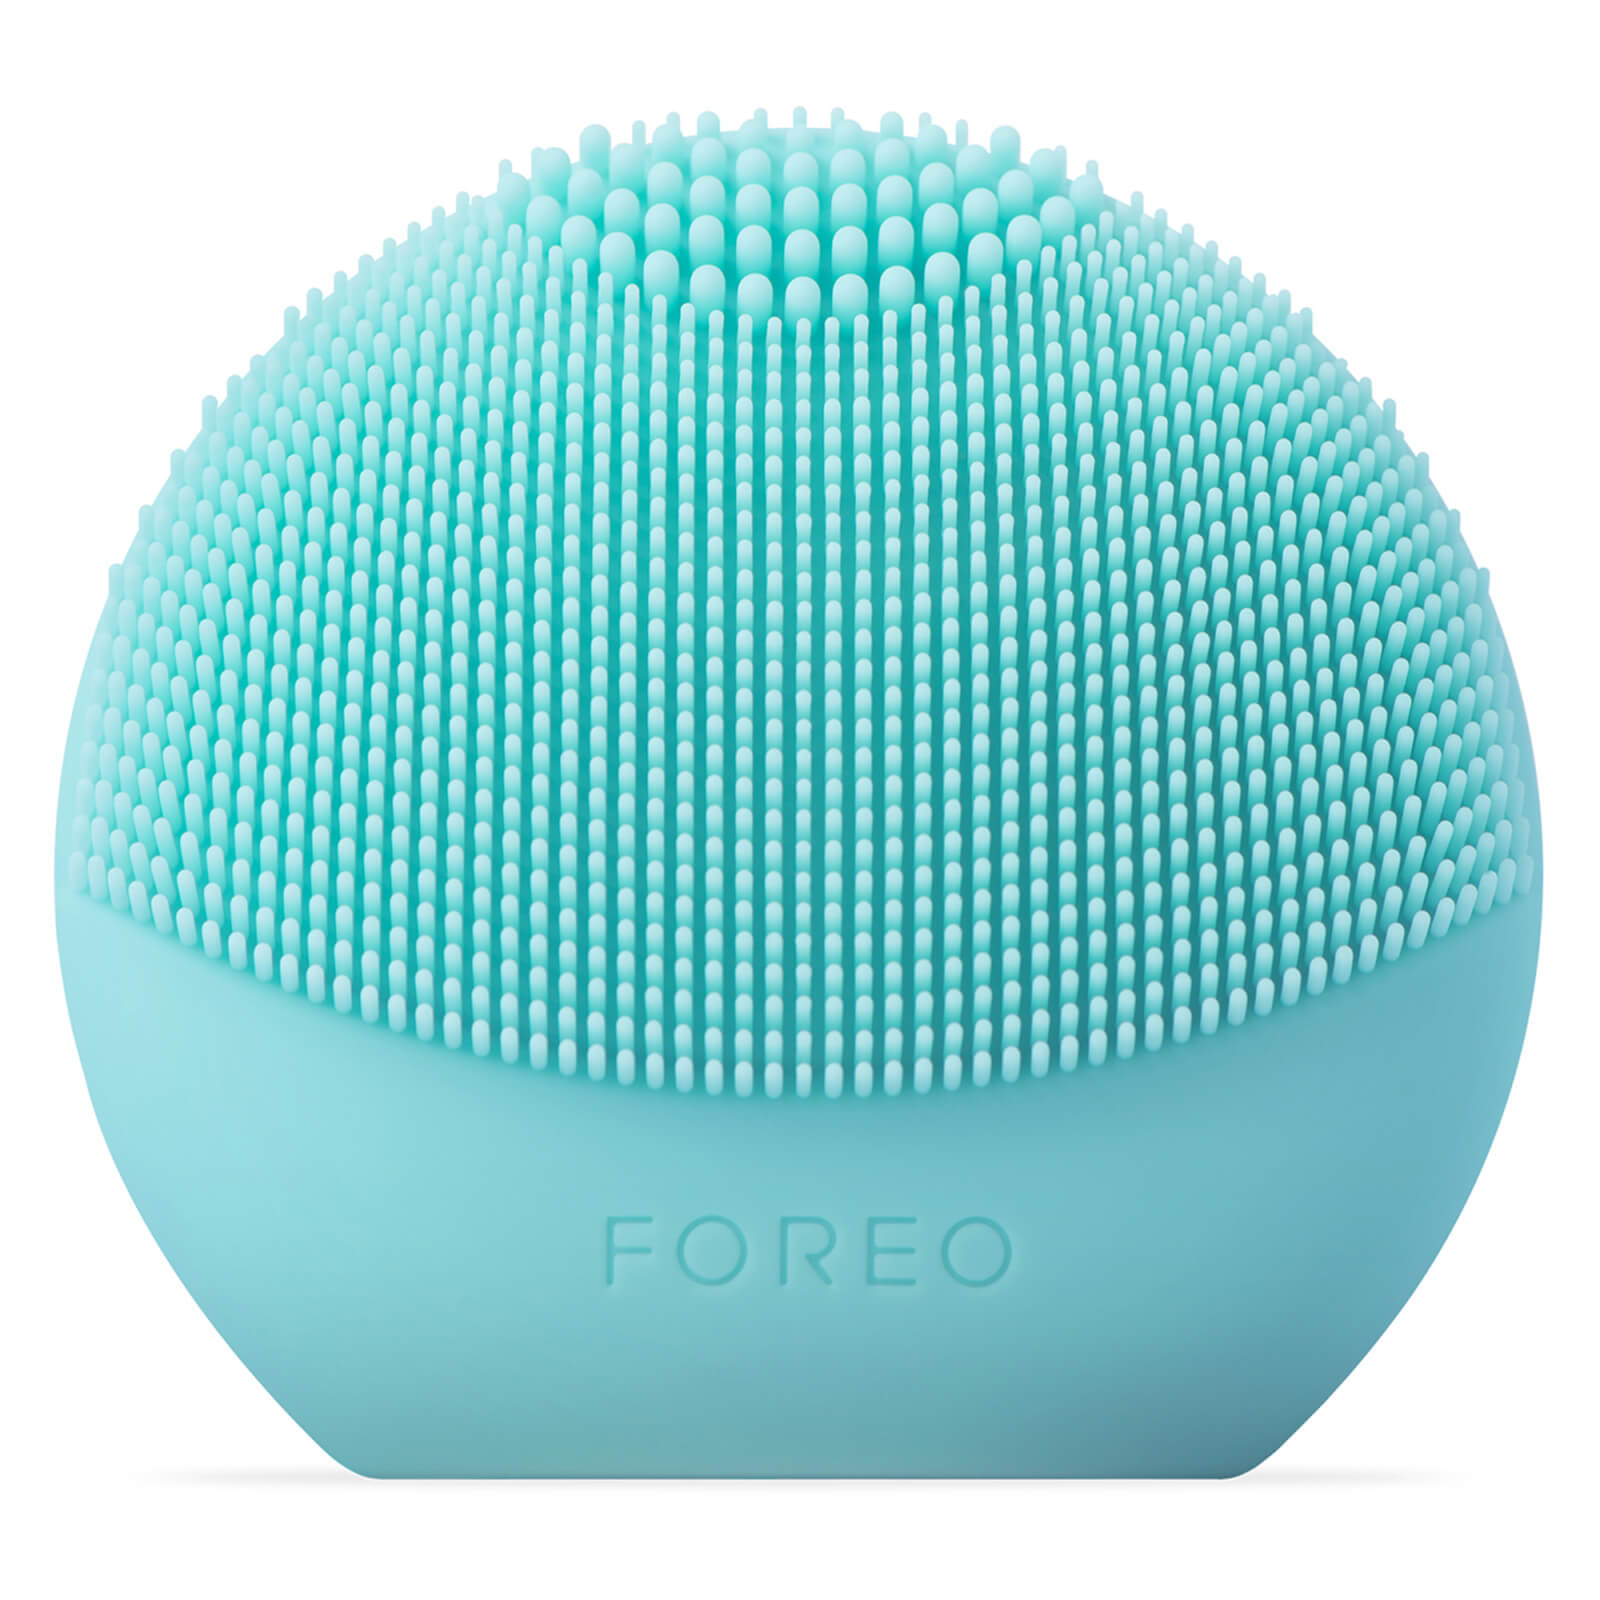 Foreo FOREO LUNA FOFO SMART FACIAL CLEANSING BRUSH - MINT